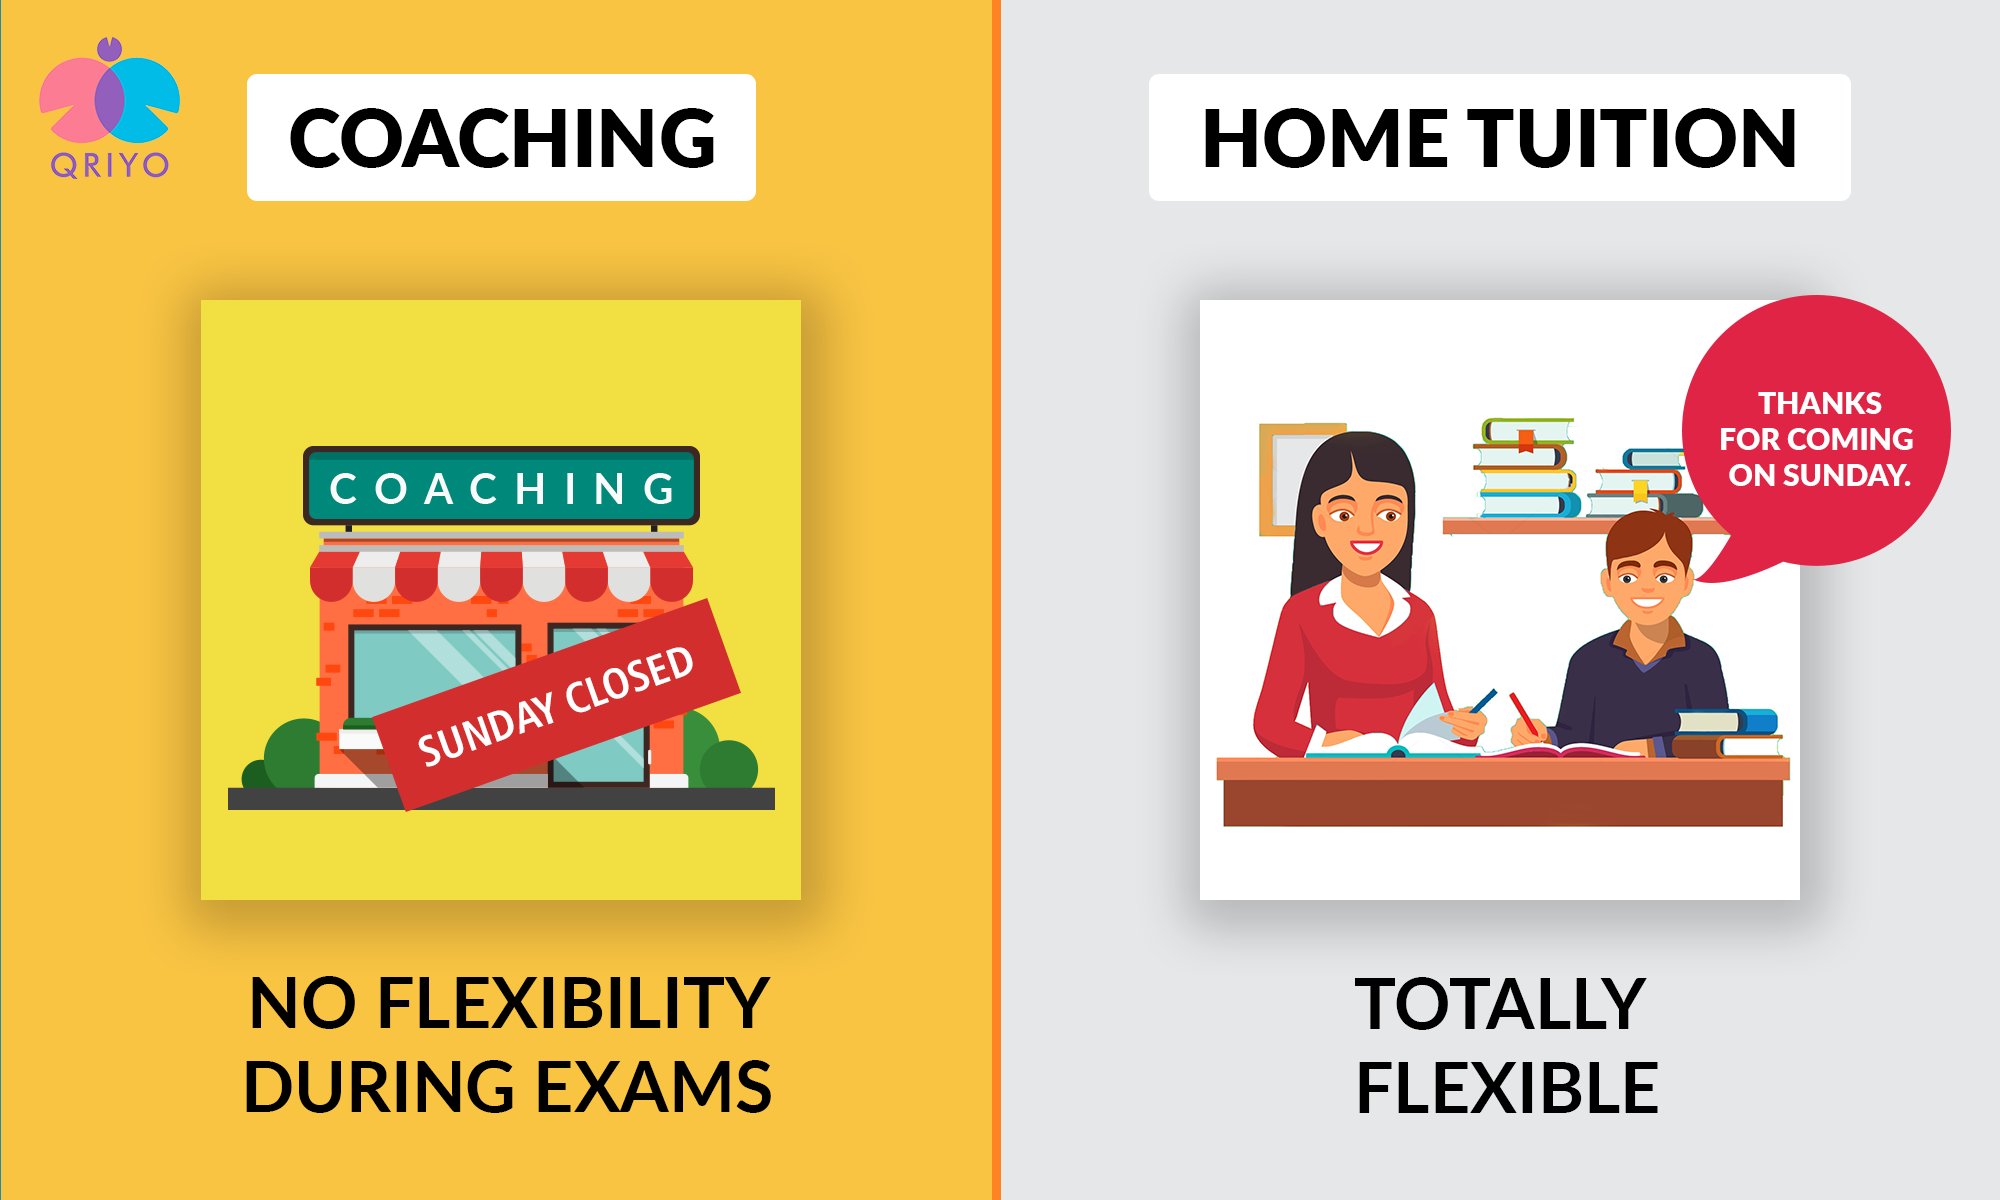 No flexibility in Coachings vs Full flexibility in home tuitions.